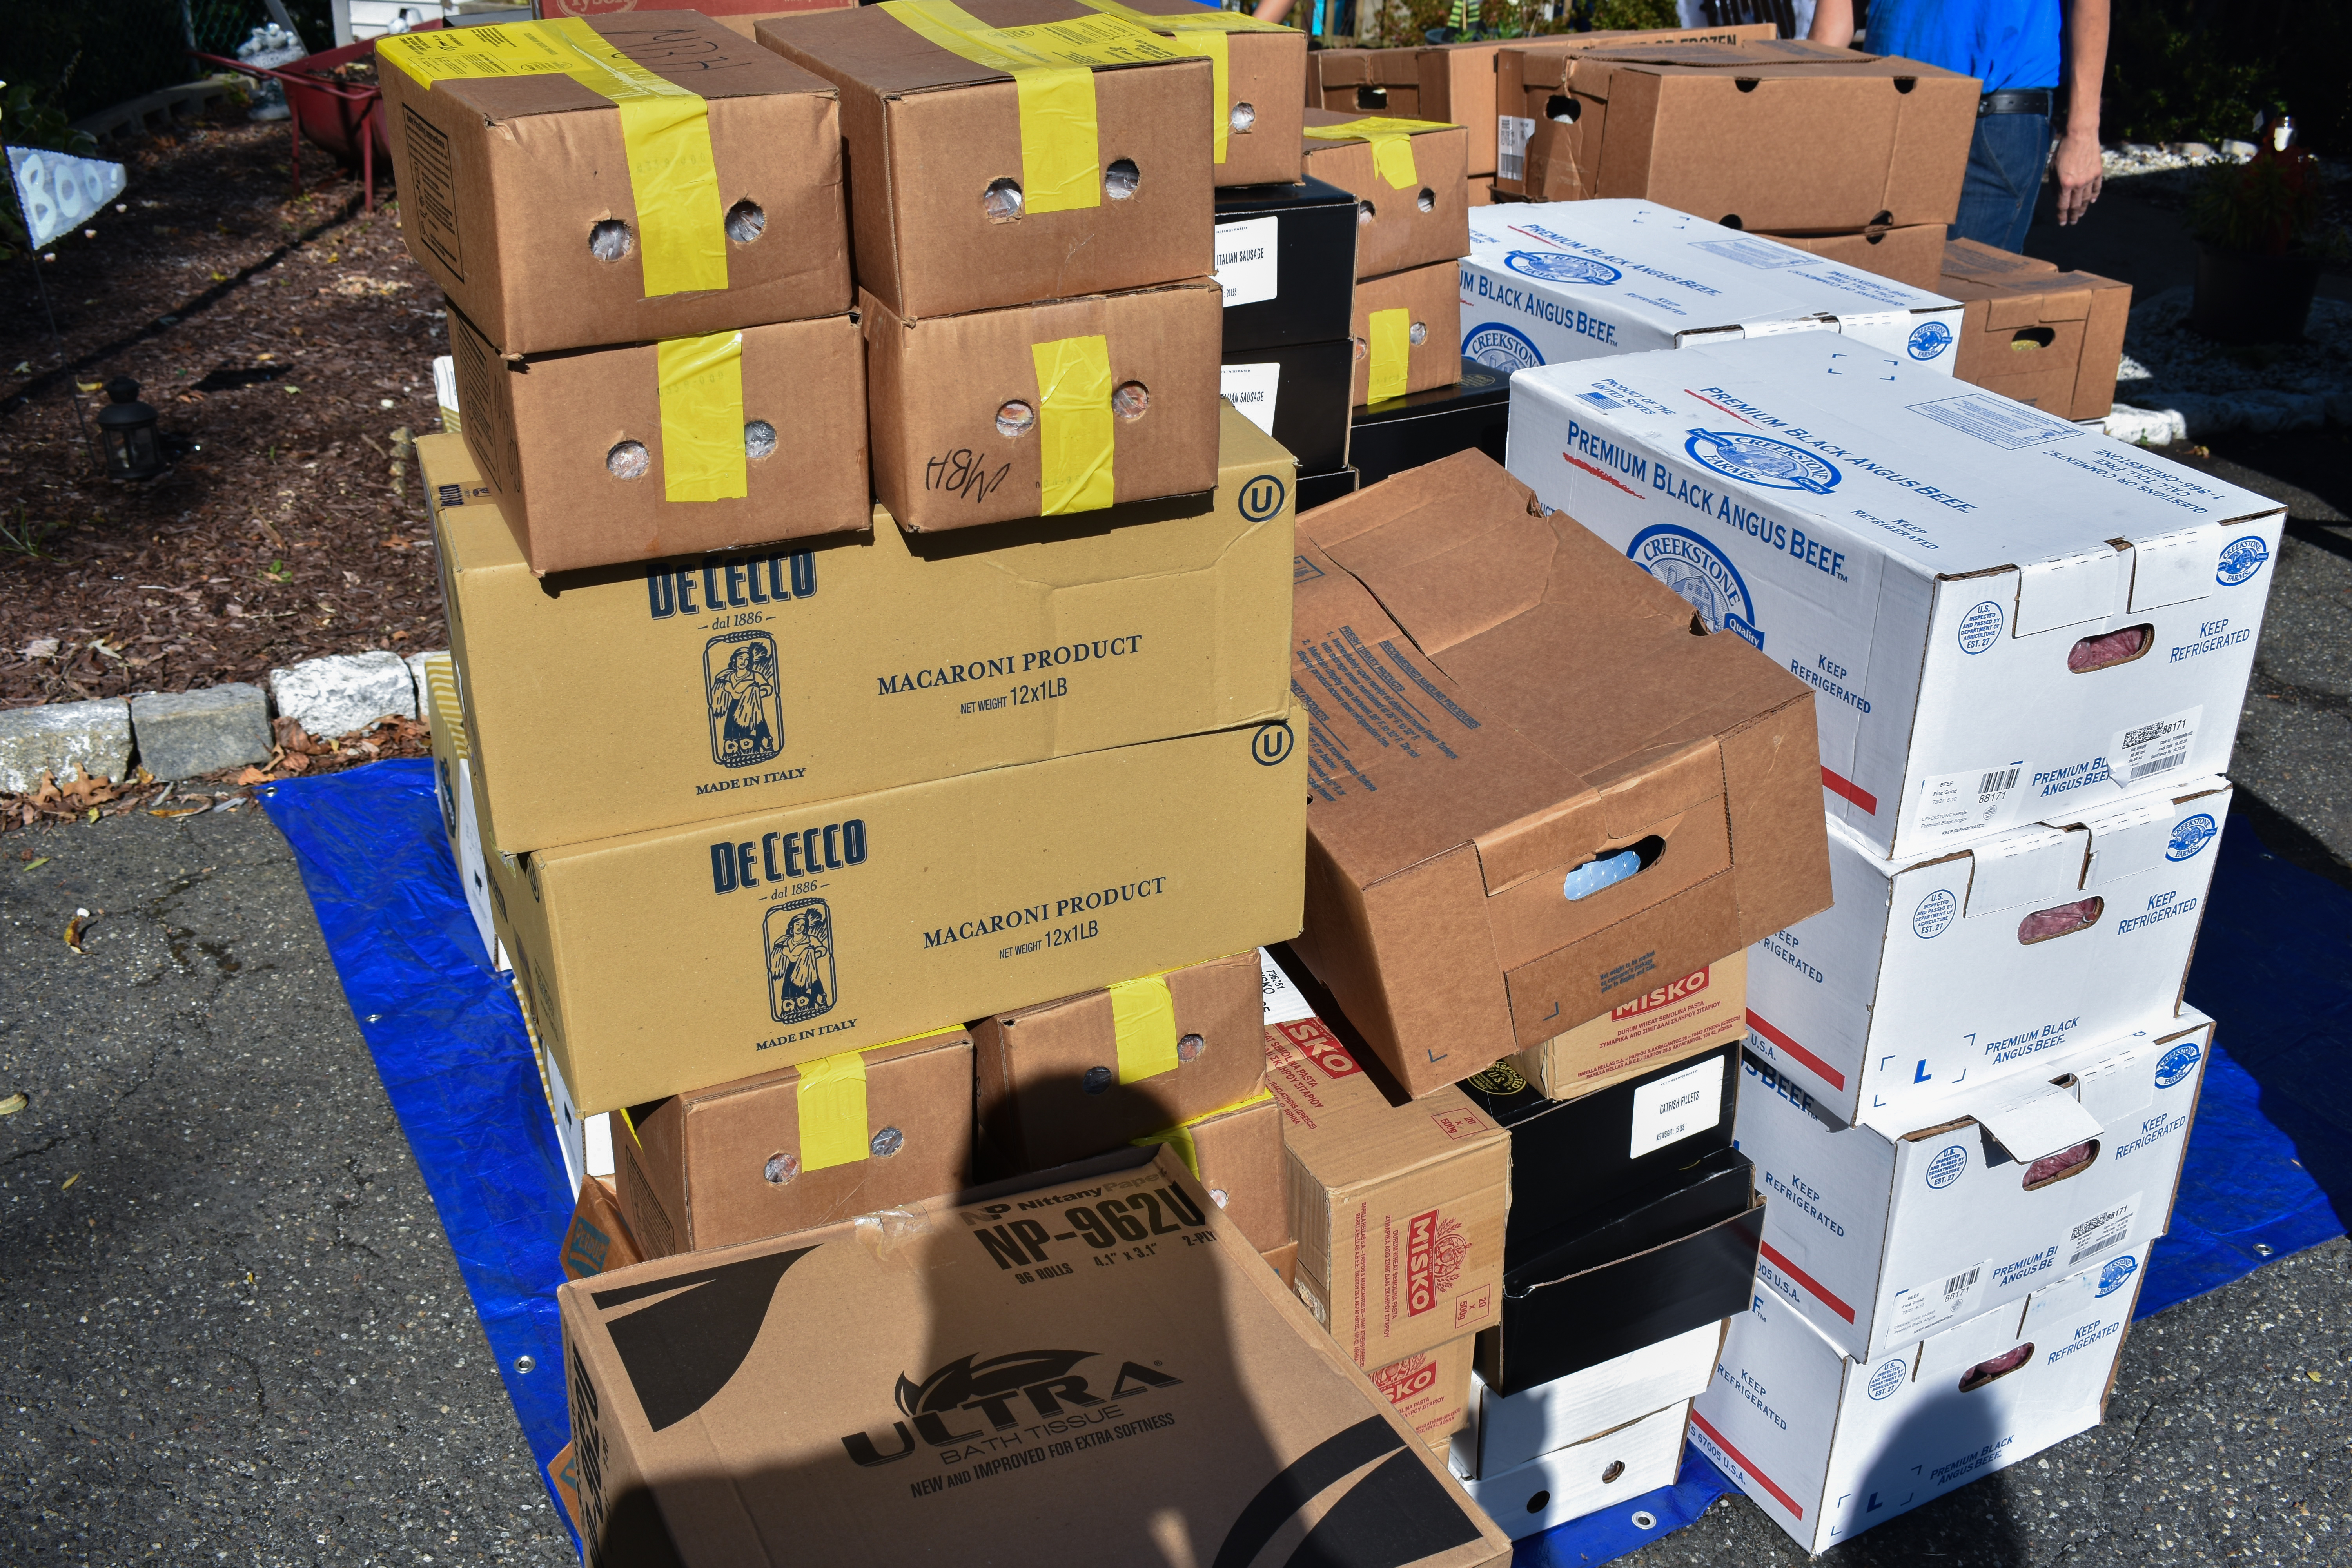 Boxes of donated food; image courtesy of Bertone Piccini and MBH Foods.